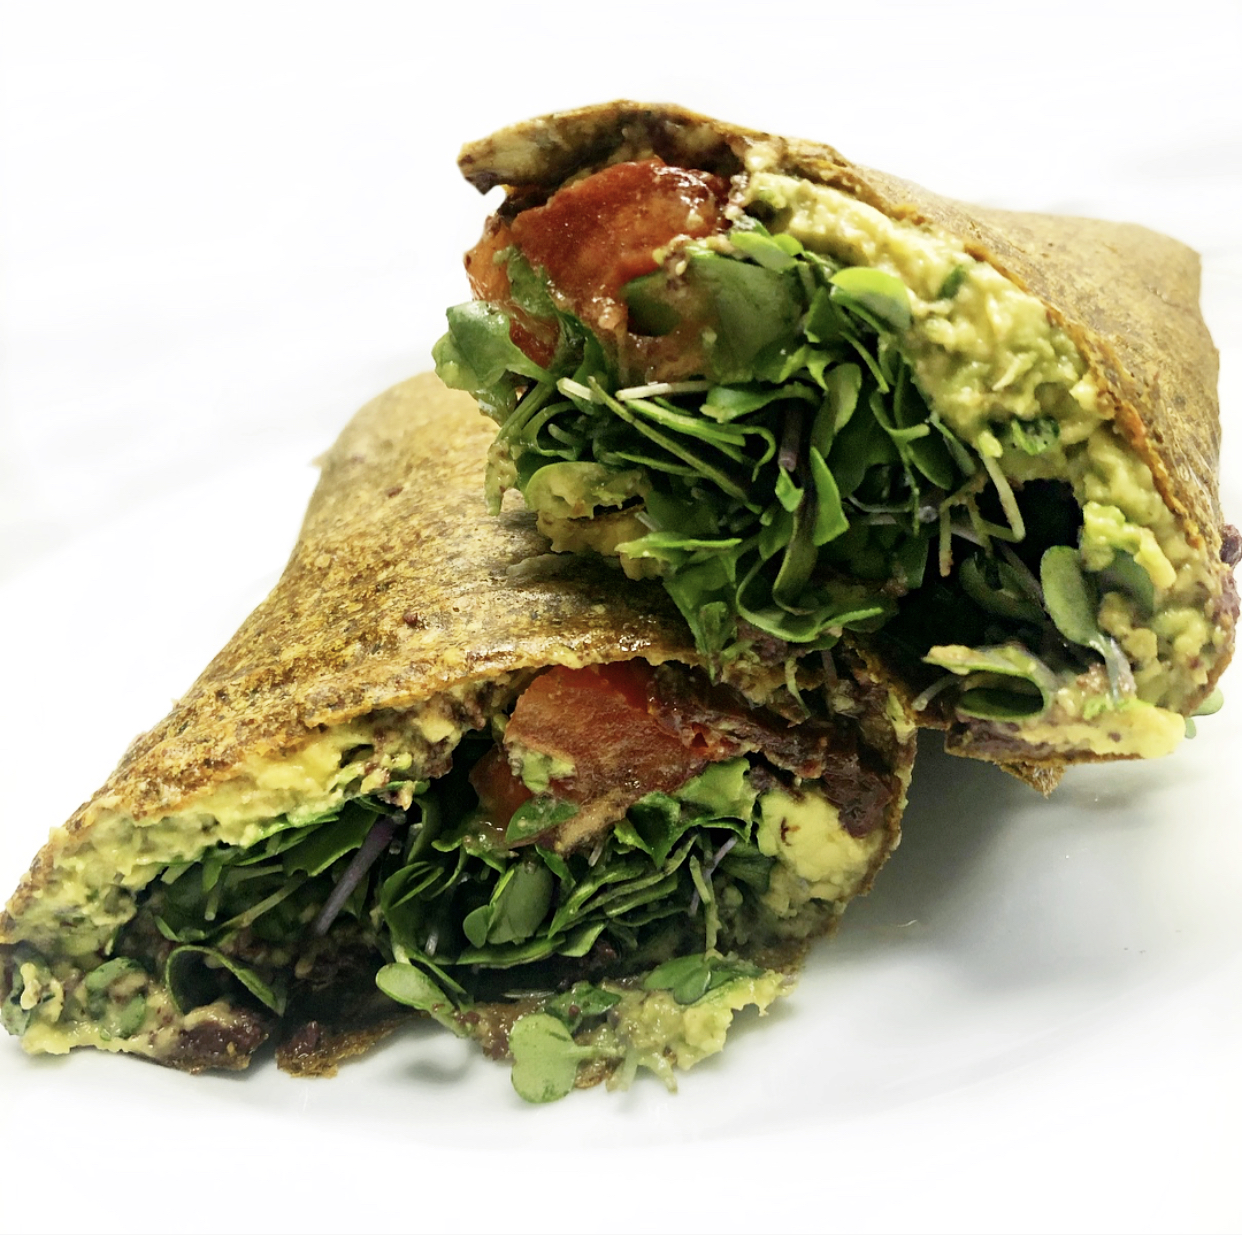 Raw vegan Mediterranean wraps